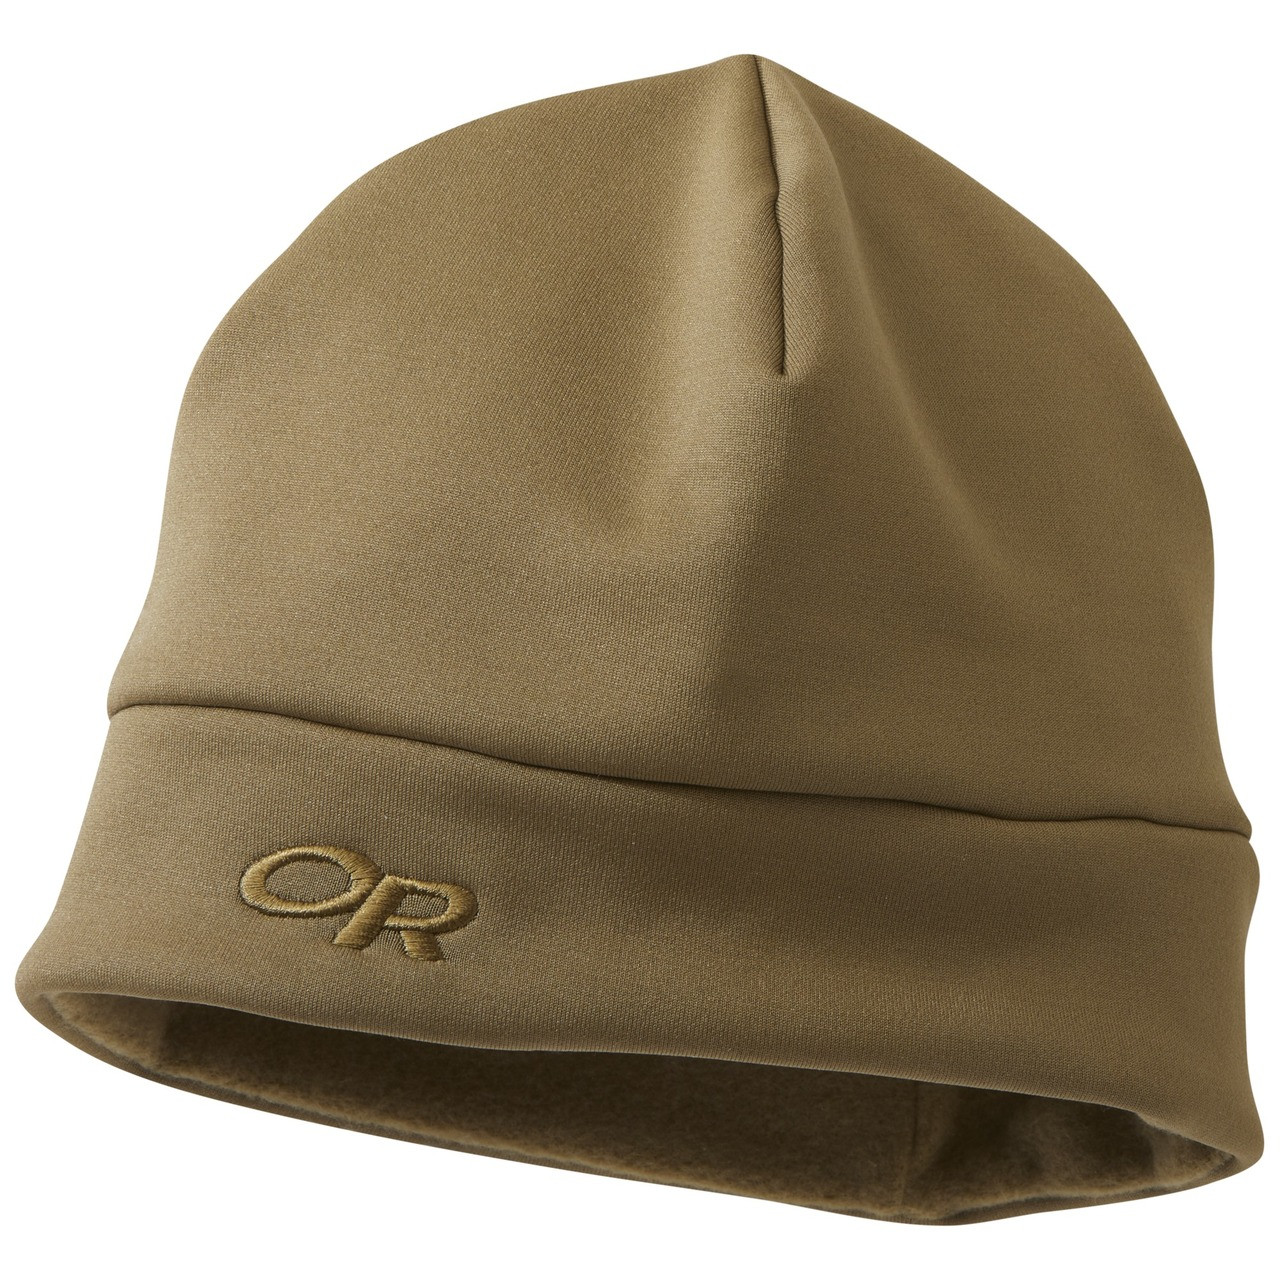 98906143147 Outdoor Research Wind Pro Hat Coyote Brown